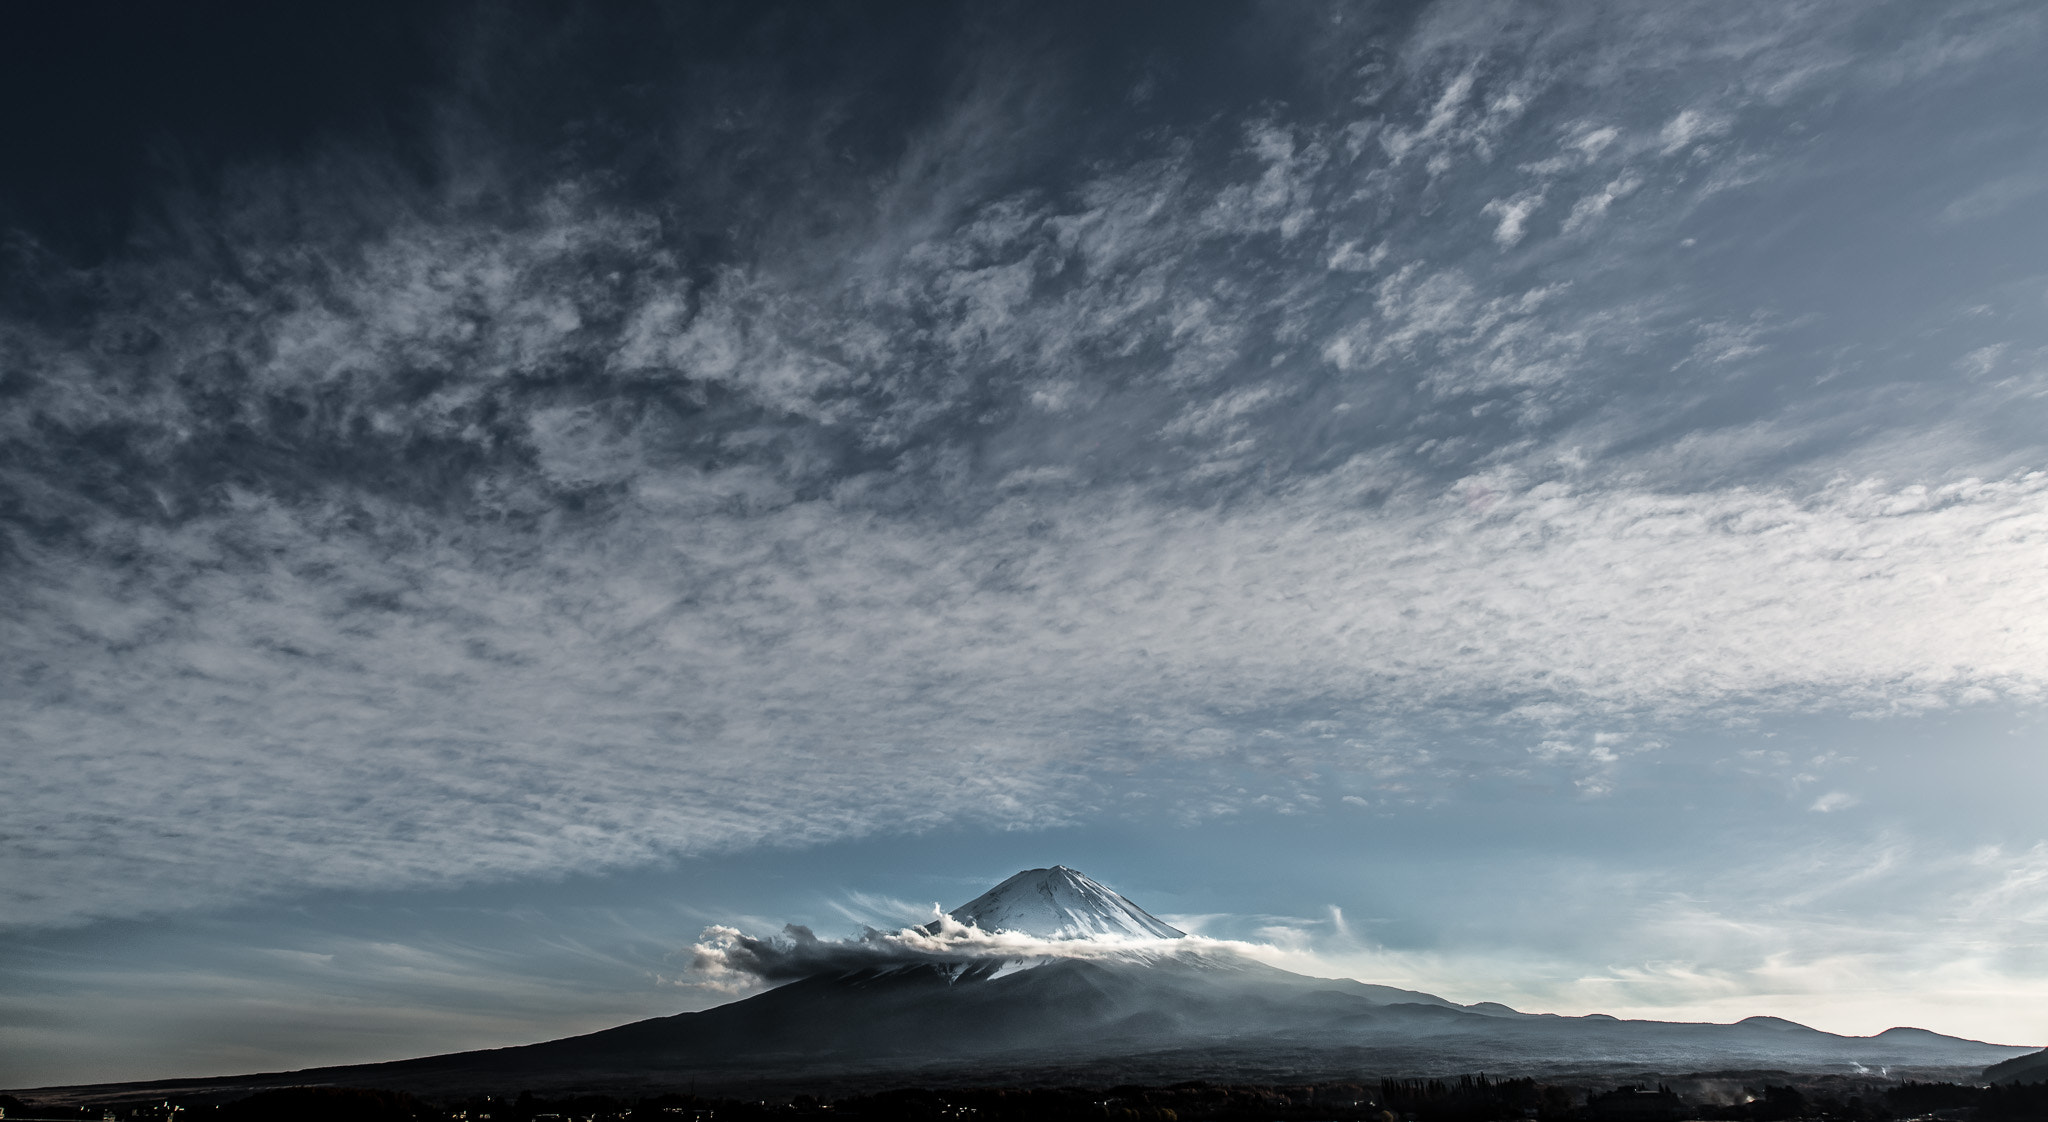 Photograph Mount Fuji by Lycien Jantos on 500px